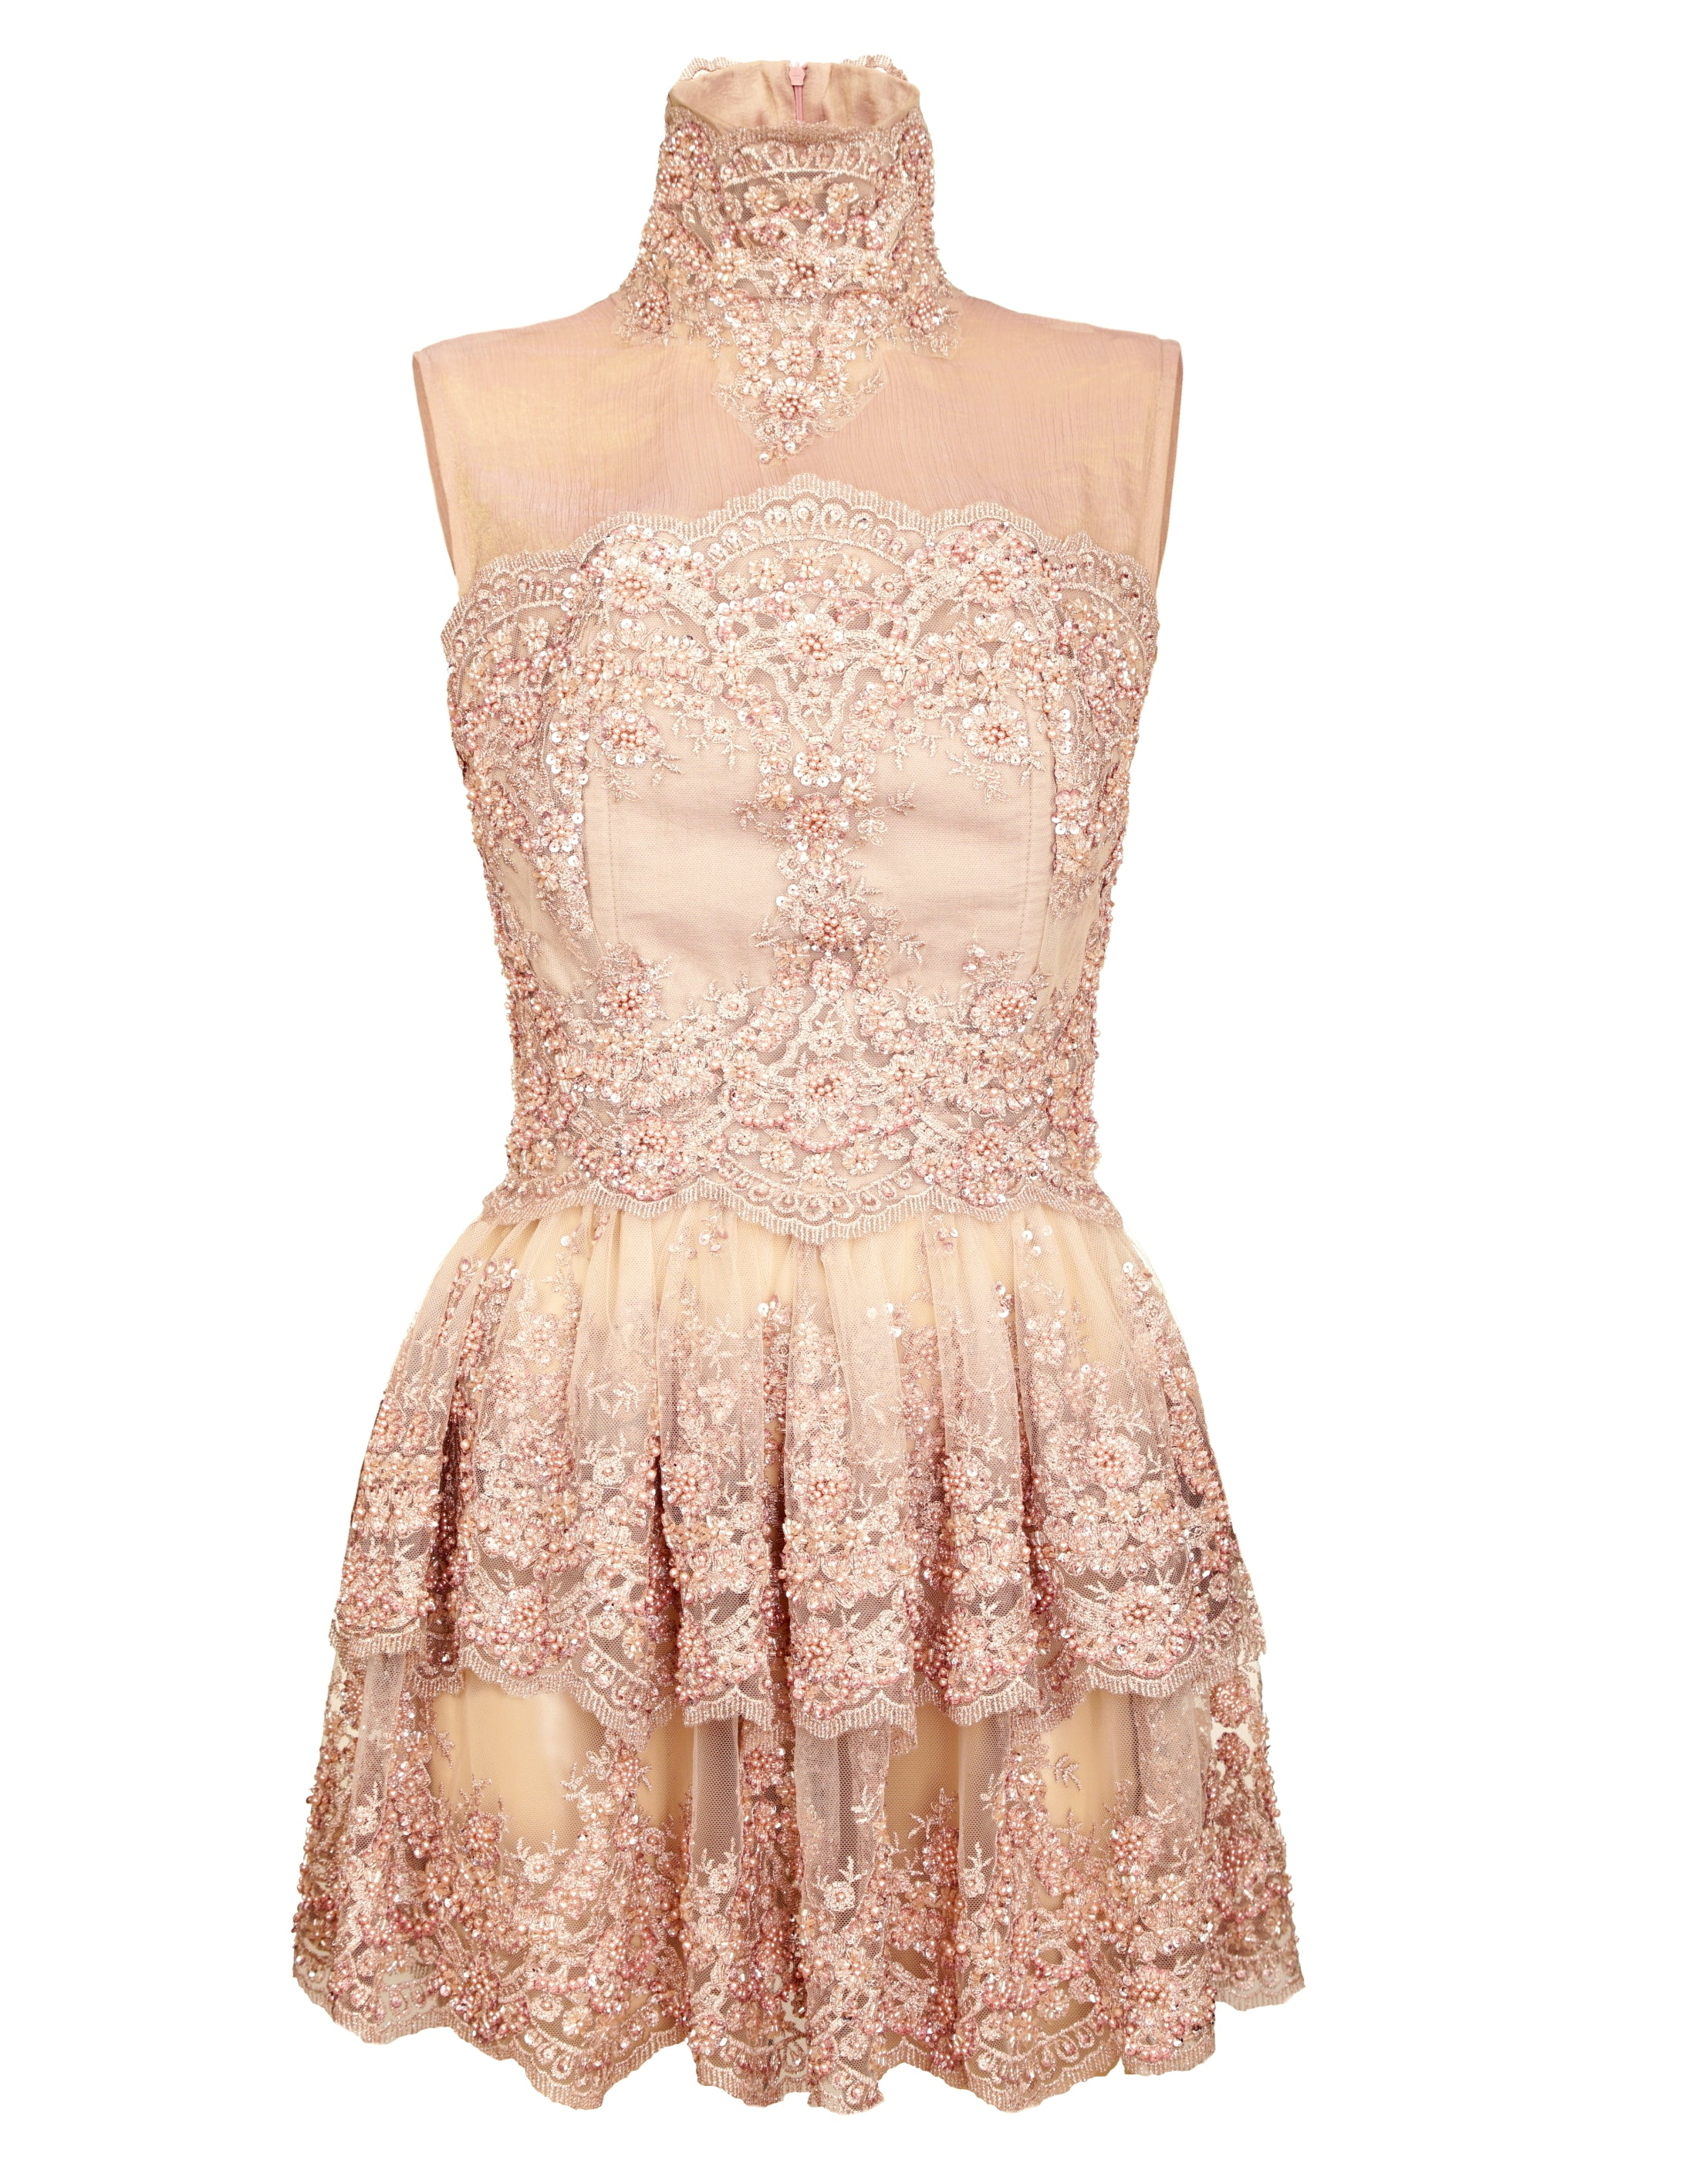 SHORT POWDER PINK DRESS WITH EMBROIDERY